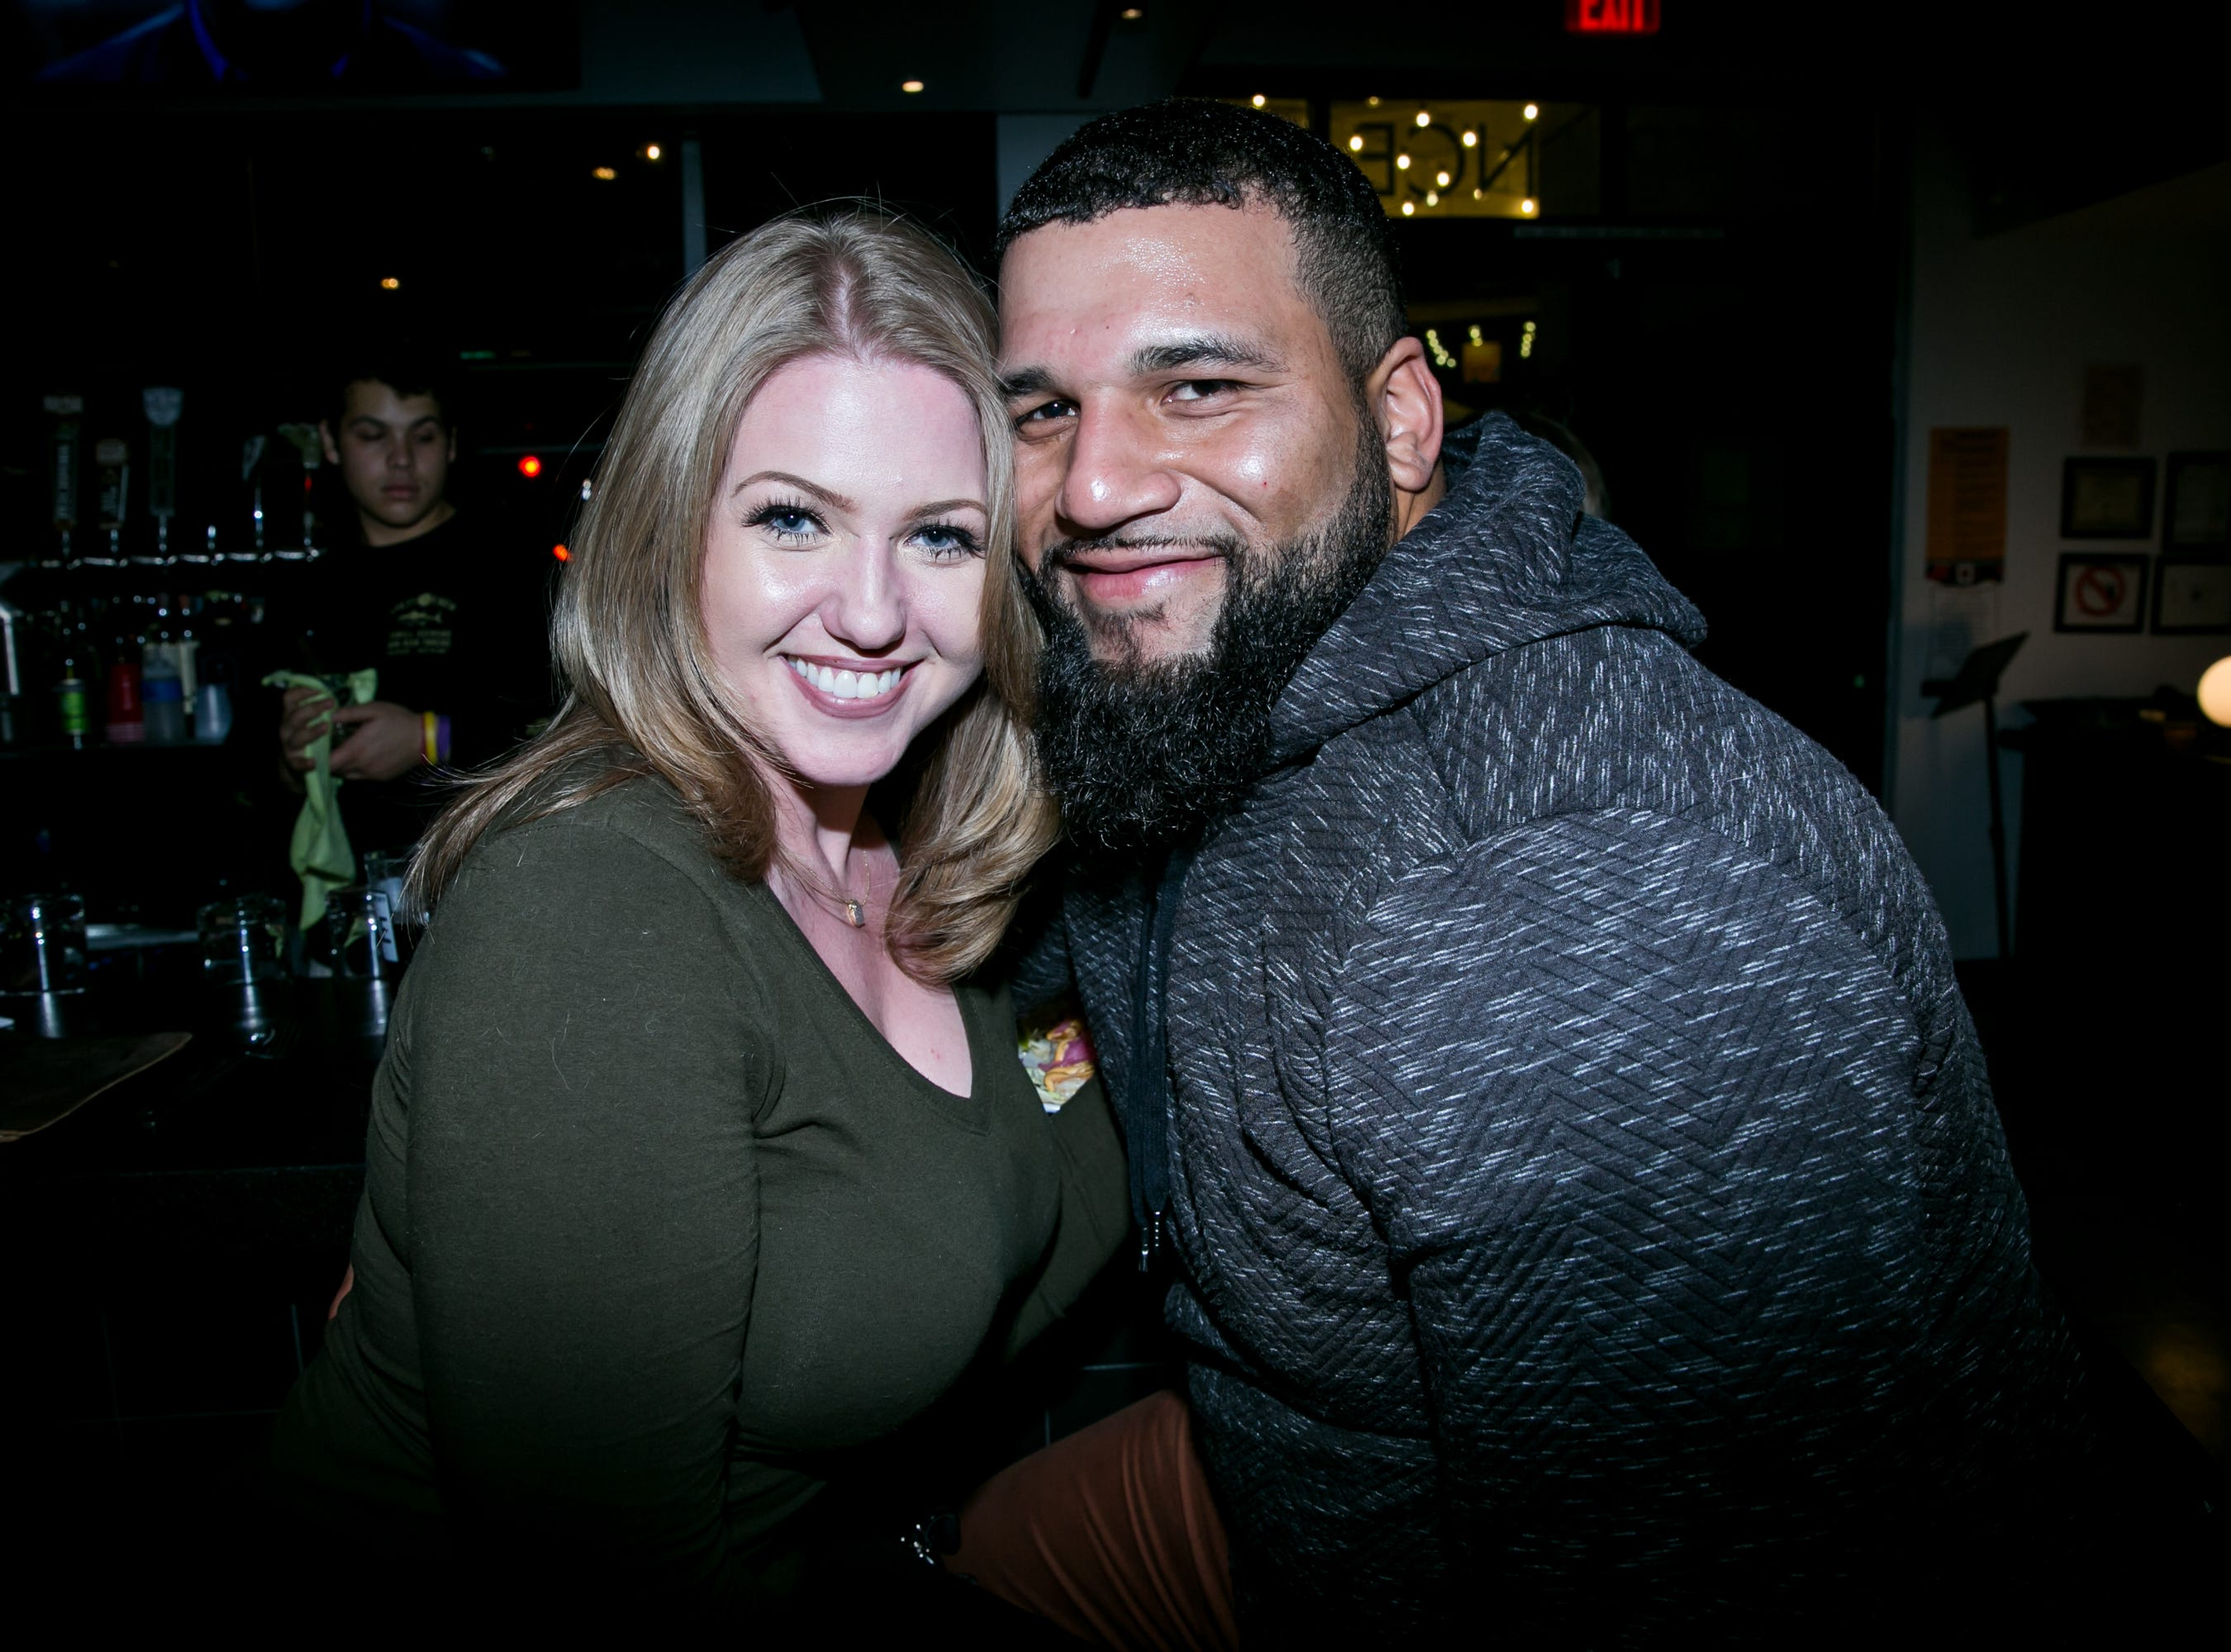 This cute couple has fun during Paz Cantina's Super Bowl Watch Party on Feb. 3, 2019.